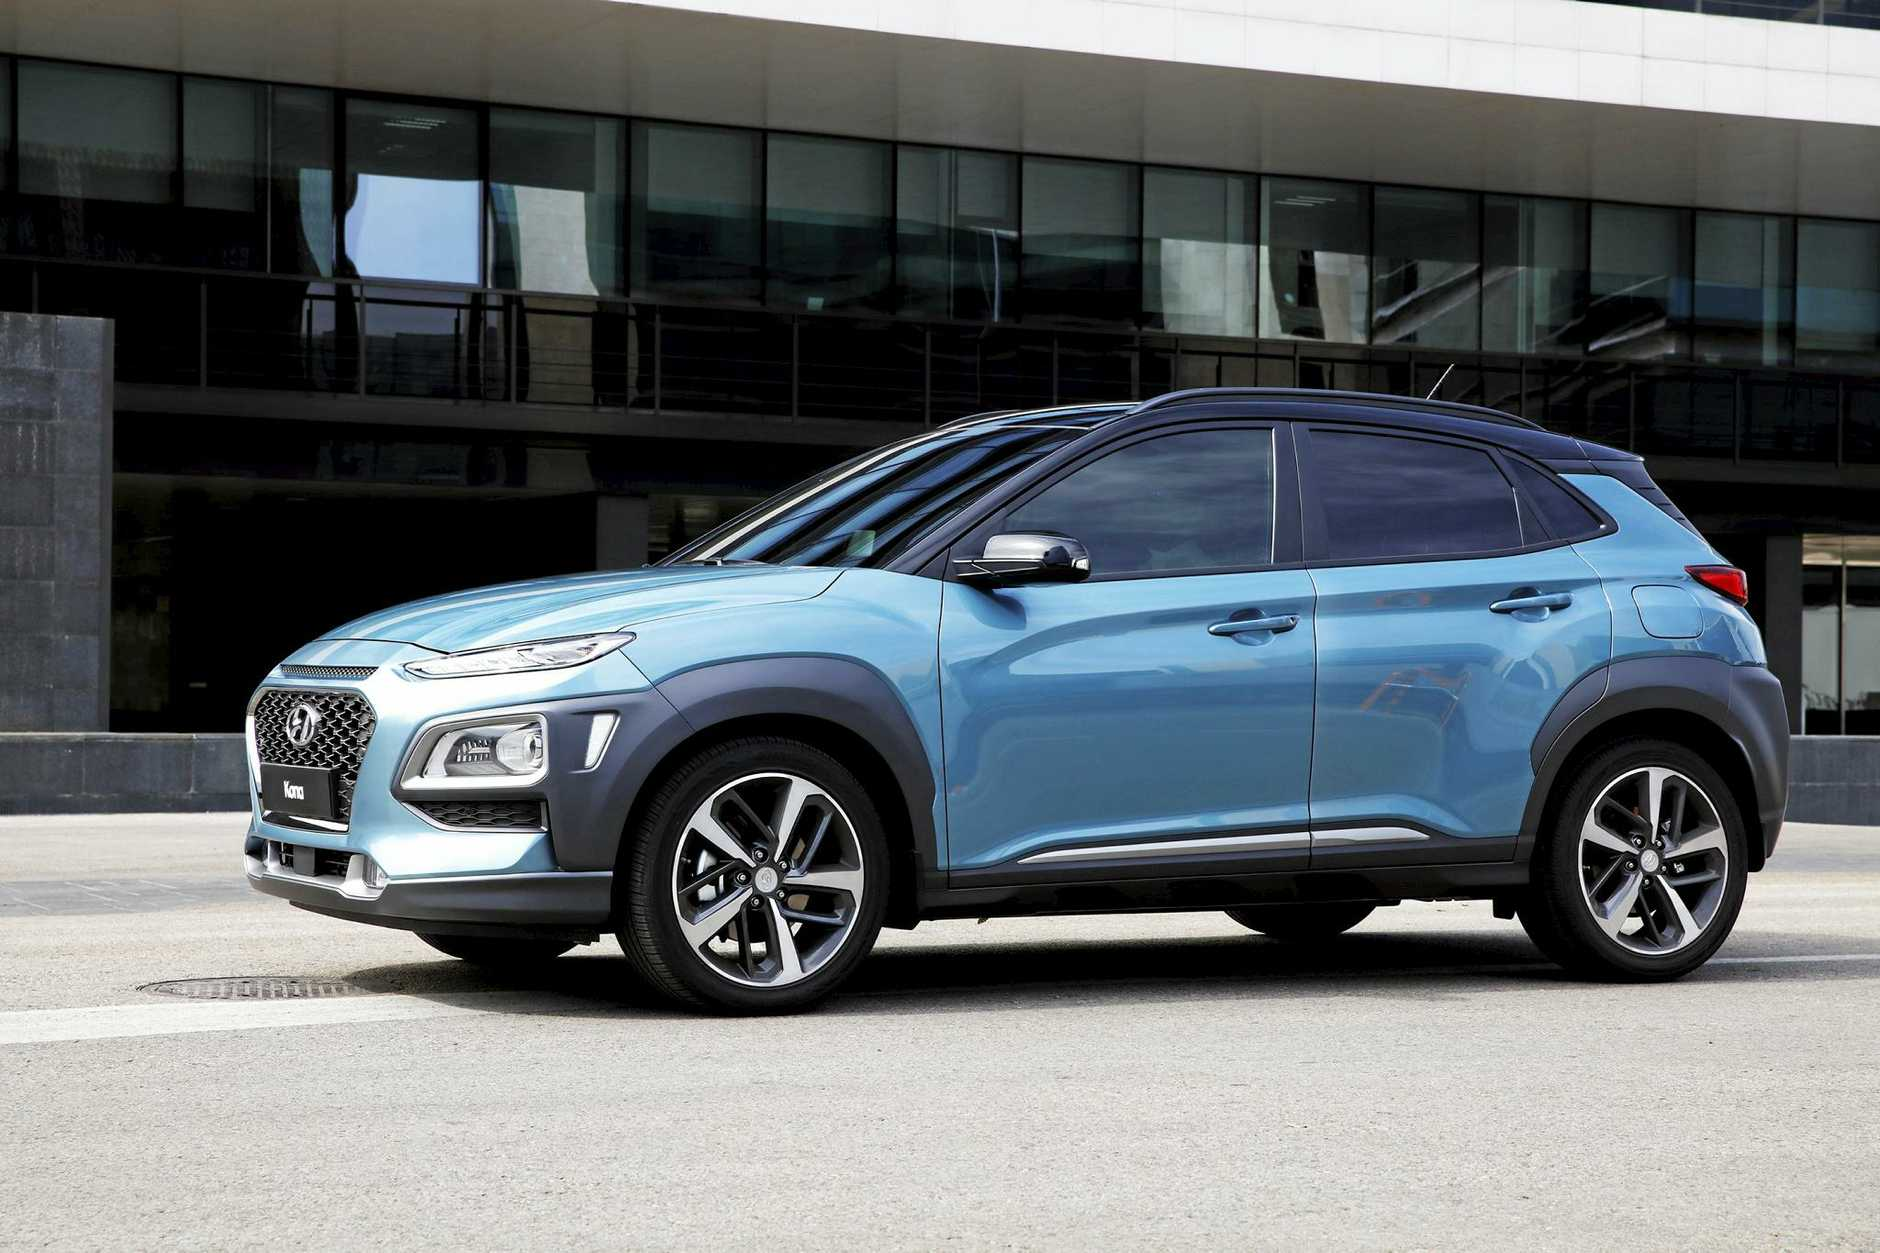 The Hyundai Kona small SUV will be launched by October in Australia with a choice of two petrol engines. EMBARGO JUNE 13 11.30AM